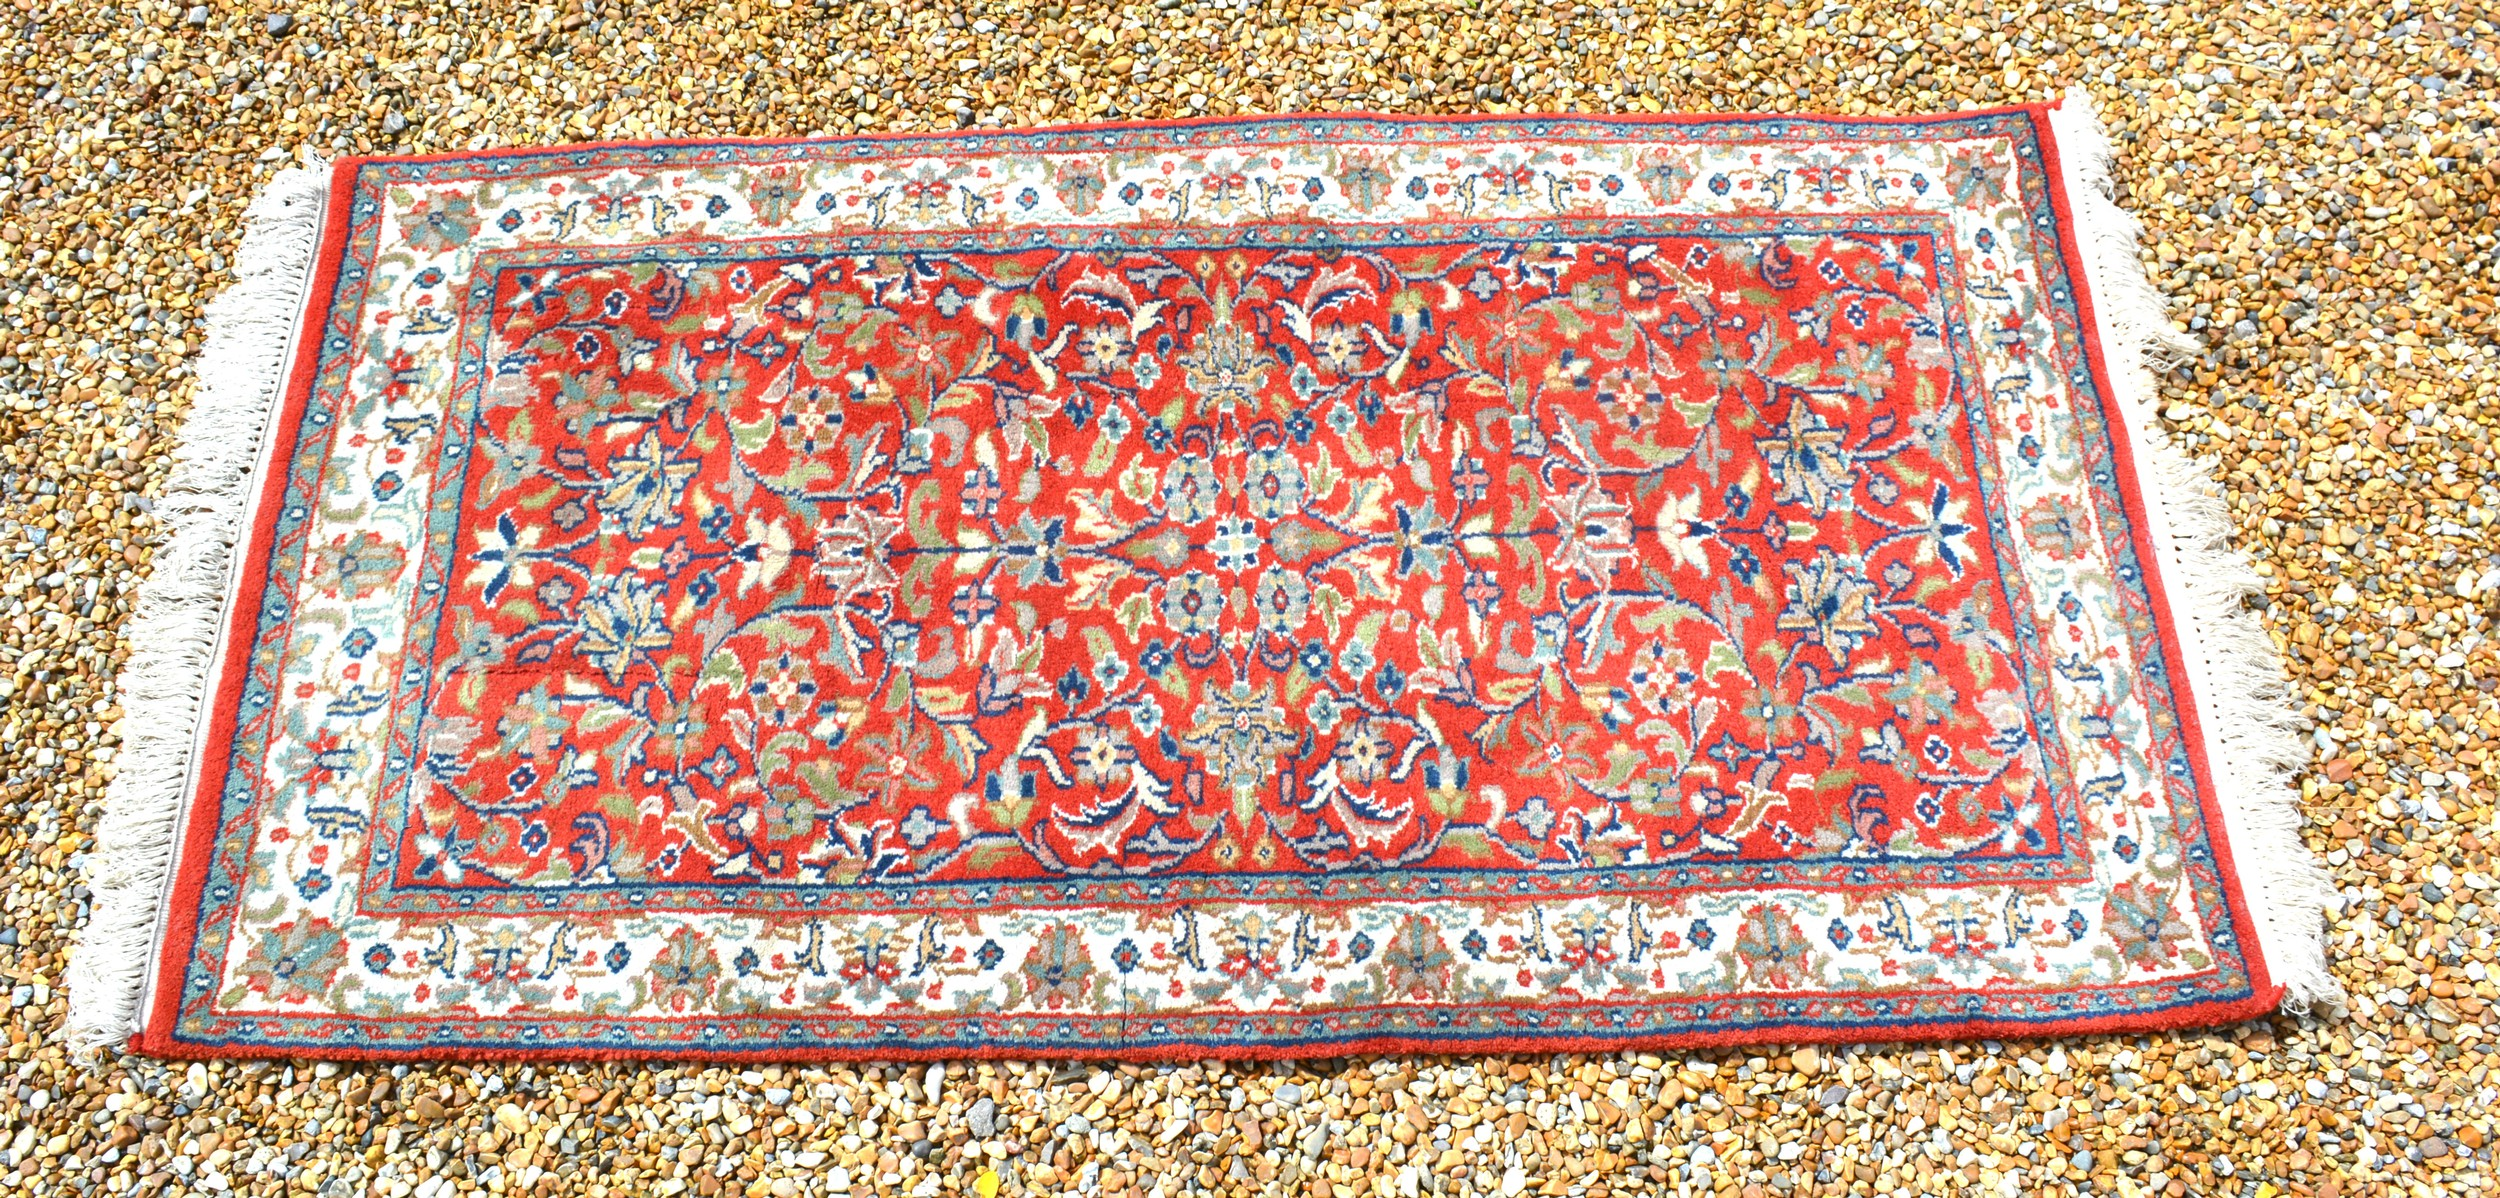 A North West Persian small rug with an all over design upon a red, blue and cream ground within